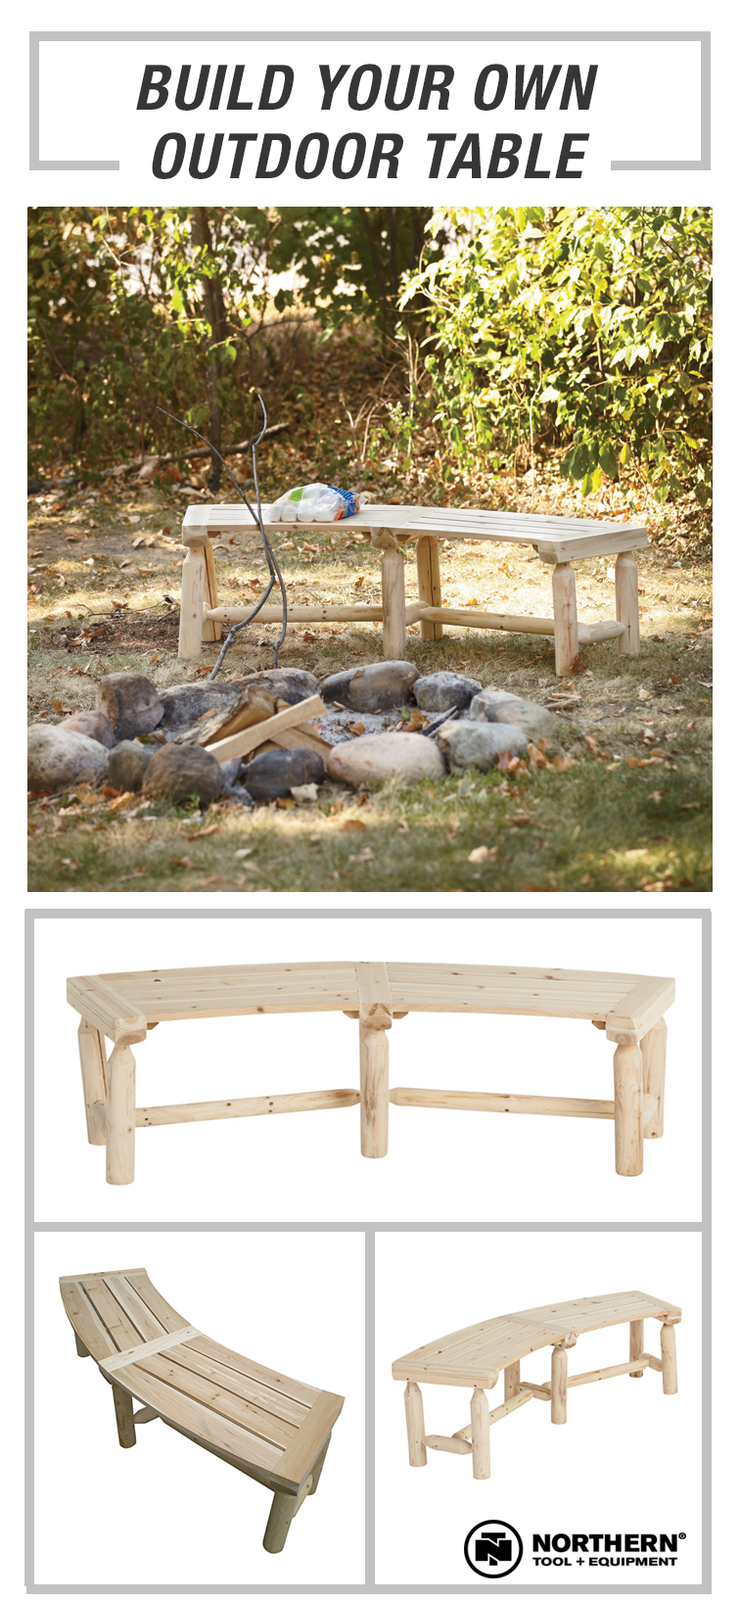 Firepit Benches Make Entertaining Easy, One Of Our Most Popular Products In Patio  Furniture!